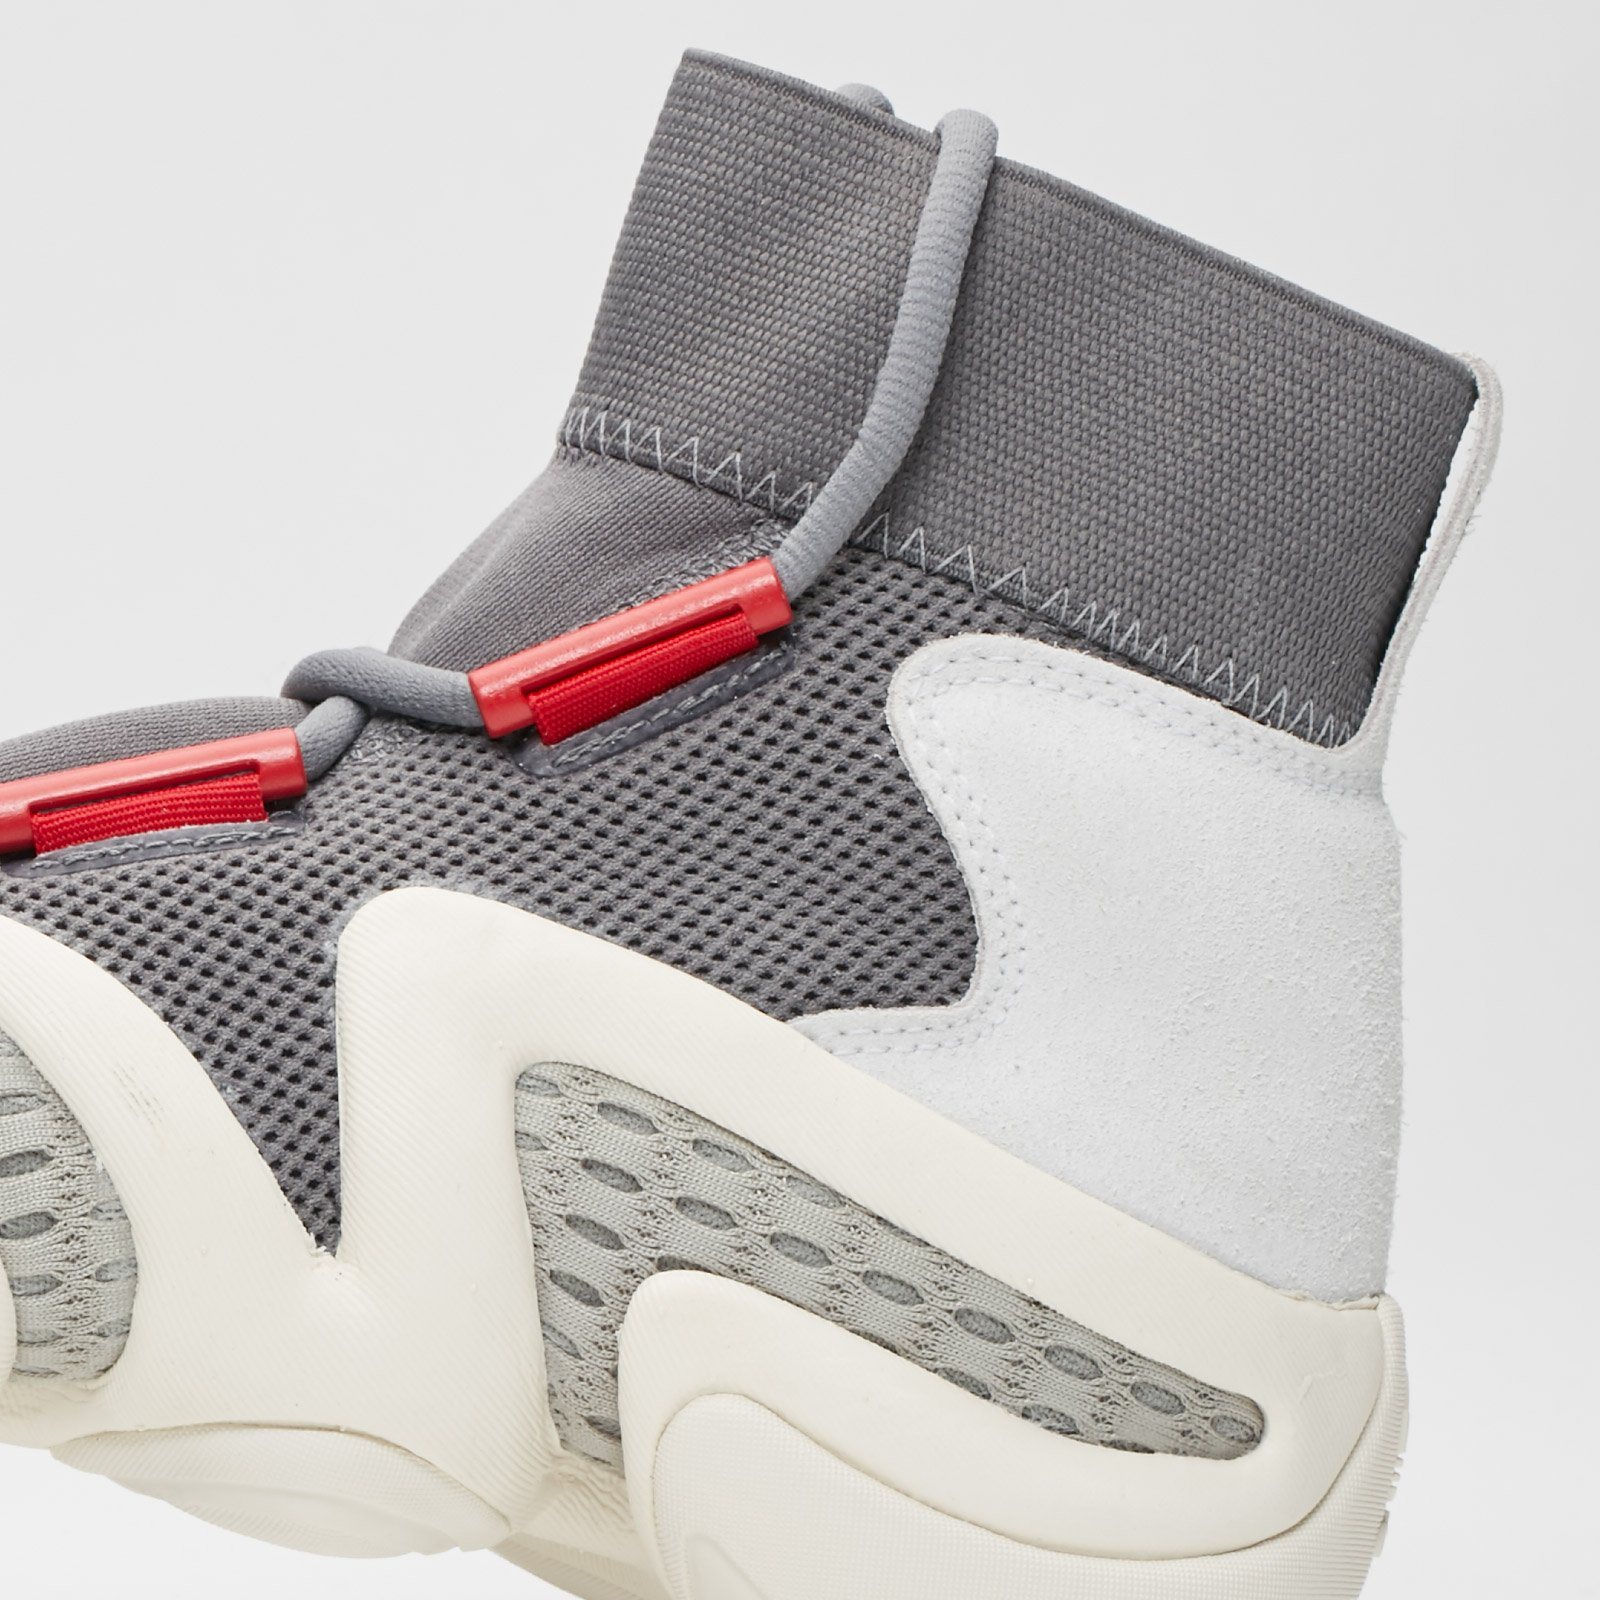 new products bd1d1 ee9fd ... adidas Consortium Crazy 8 ADV